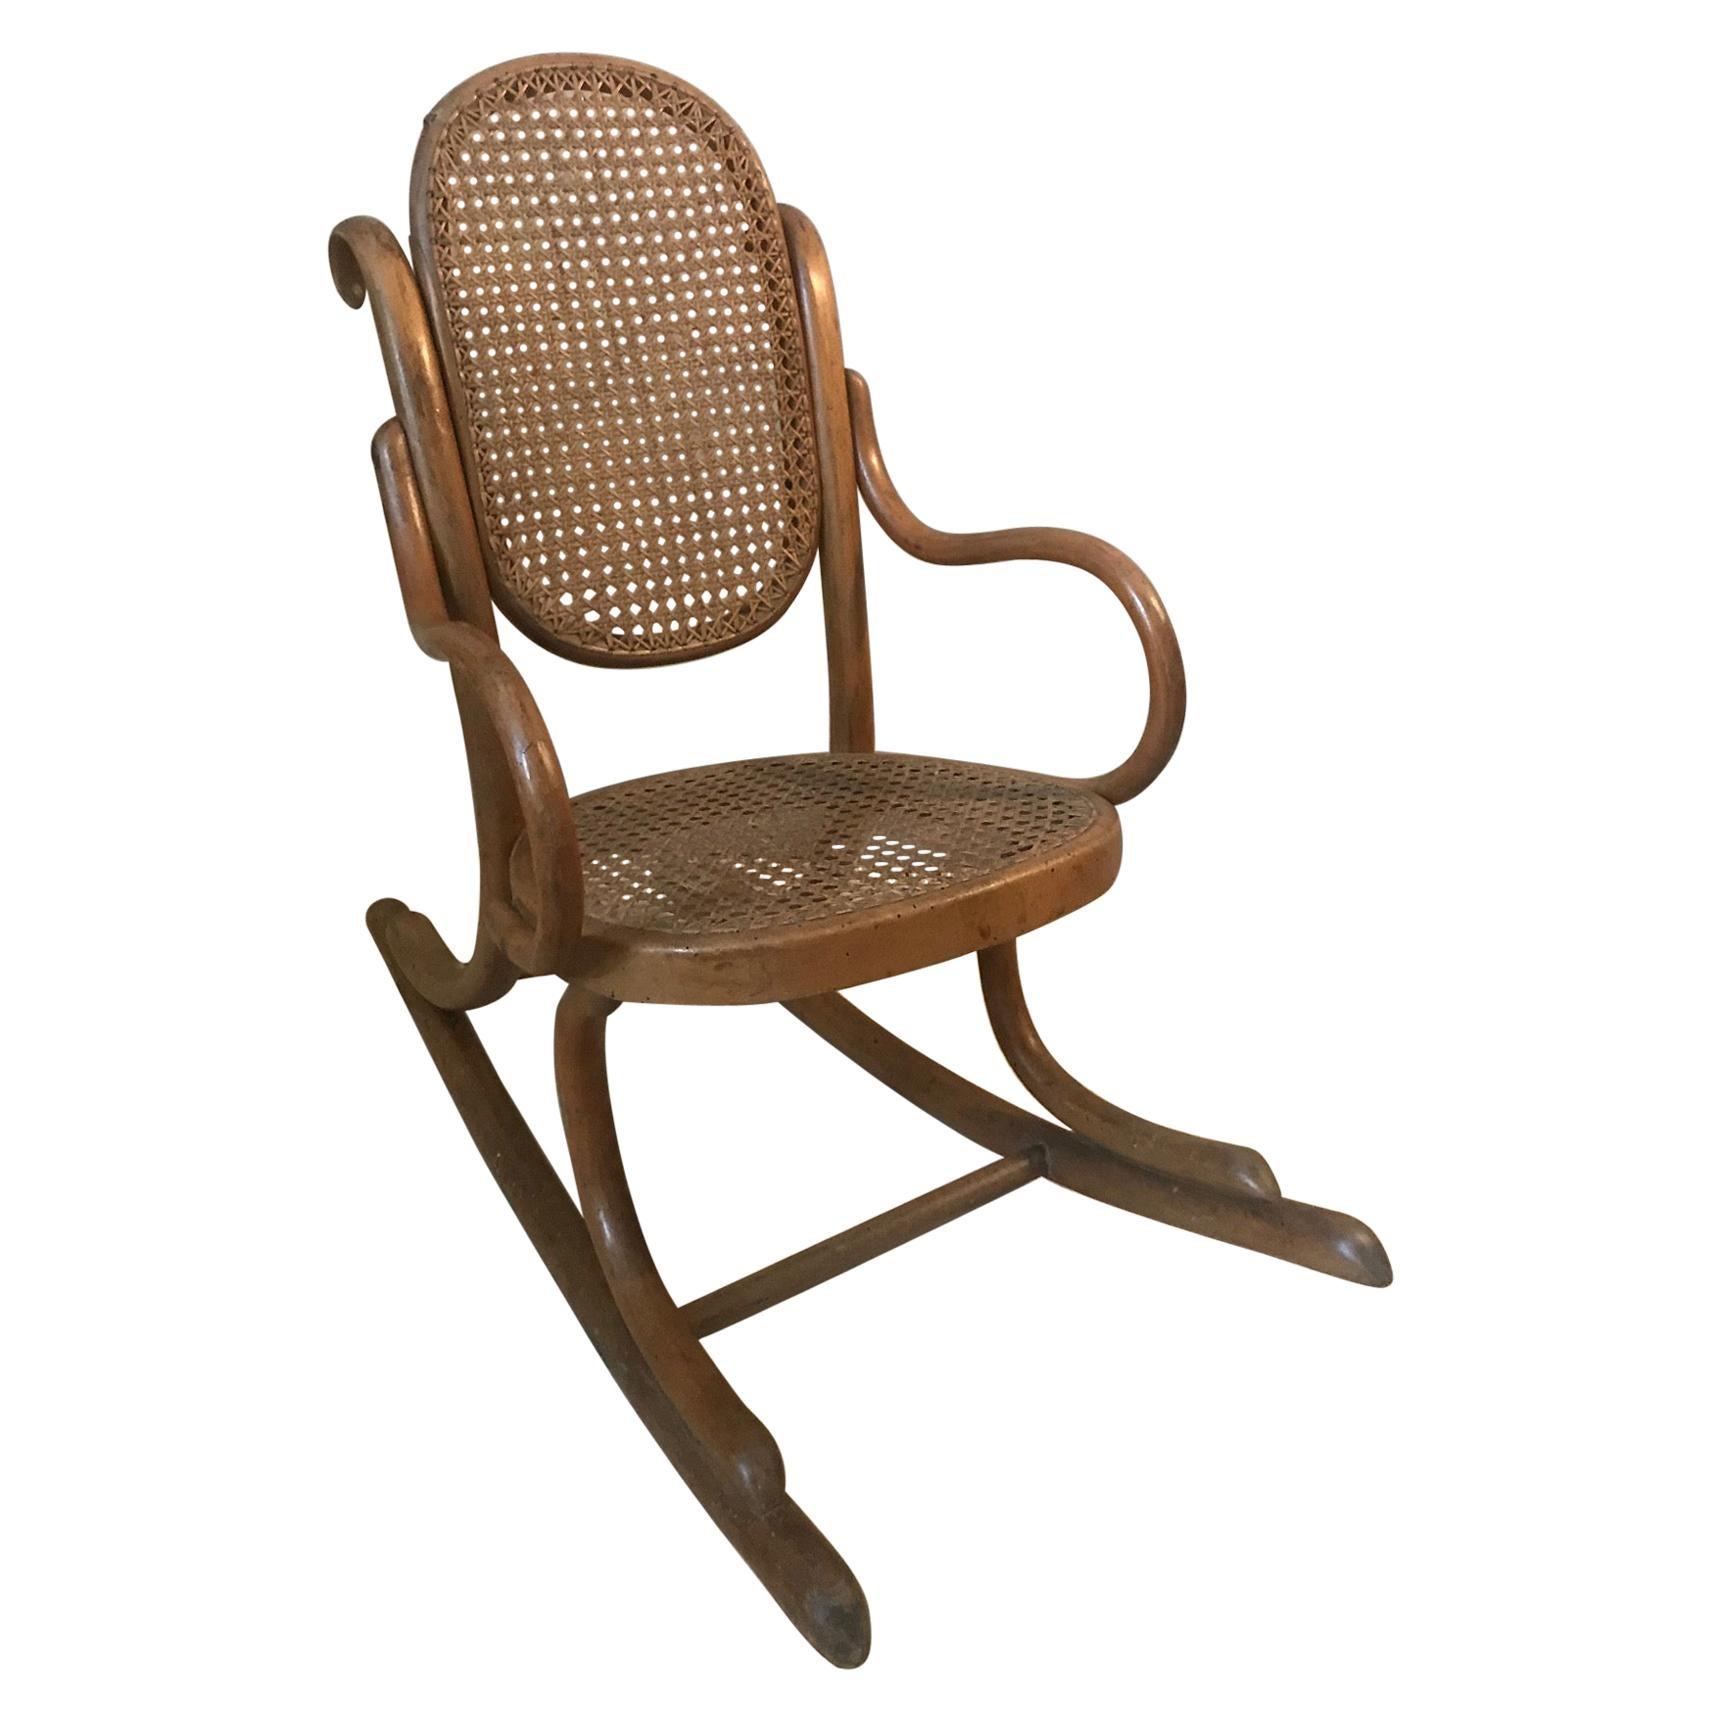 20th Century French Wood and Cane Child Rocking Chair, 1920s